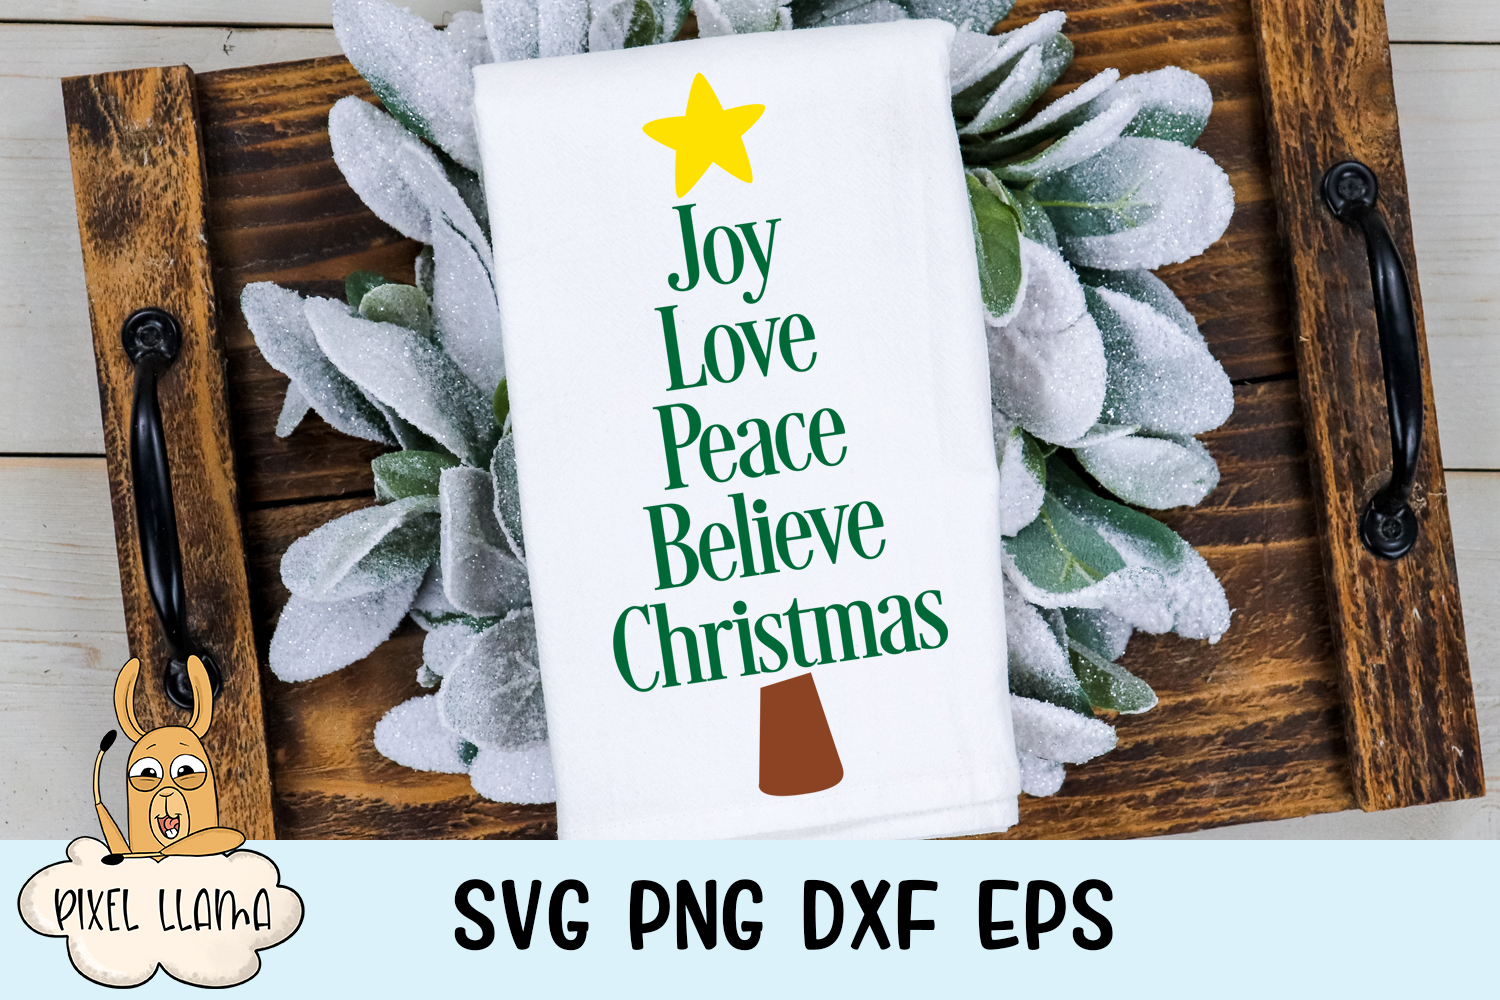 Joy Love Peace Believe Christmas Sign SVG example image 1